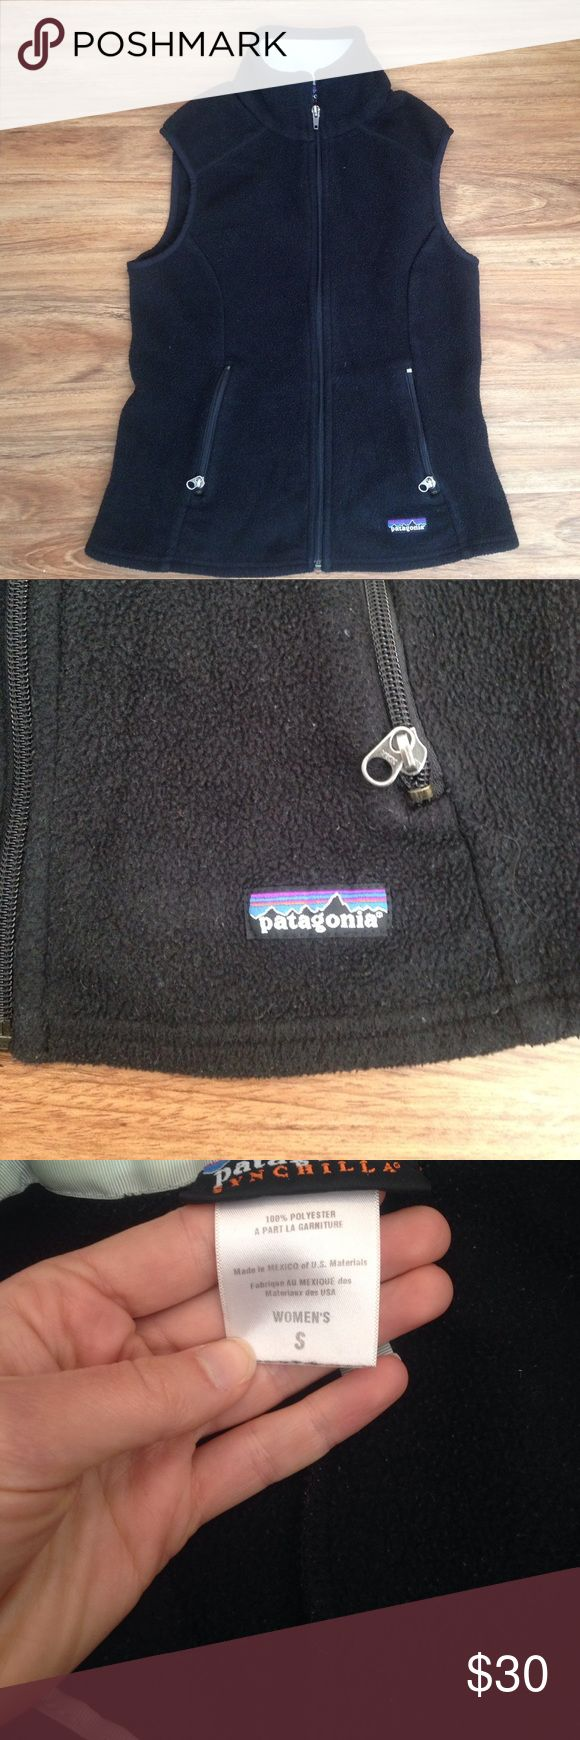 Patagonia Synchilla Vest GUC, lots of life left. Patagonia Jackets & Coats Vests